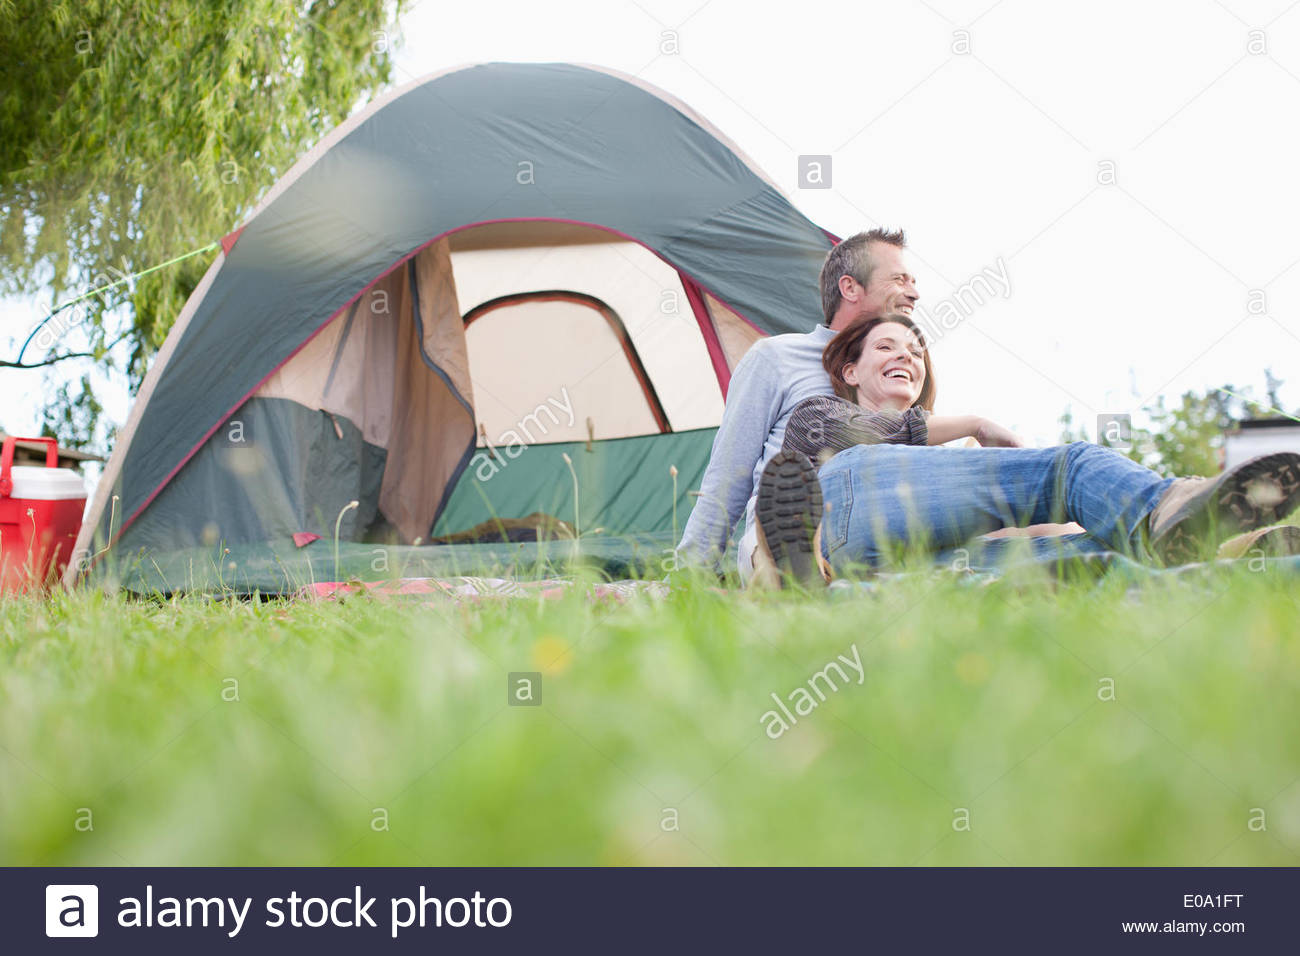 Couple camping in remote area - Stock Image